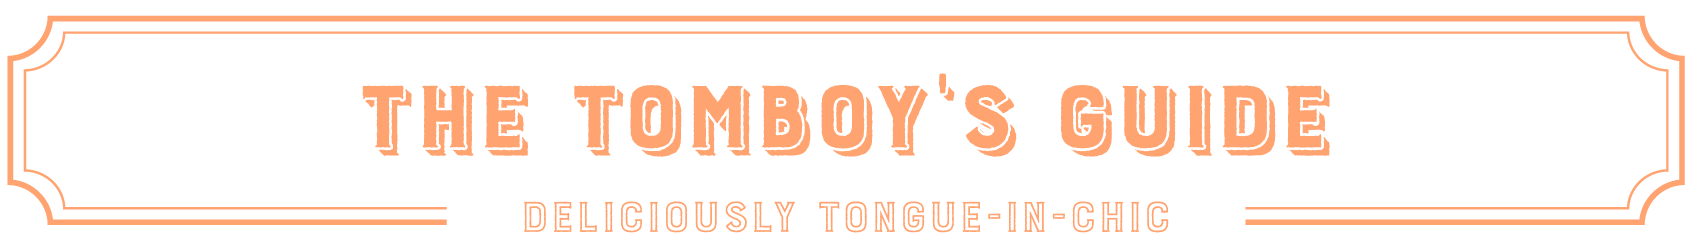 The Tomboy's Guide